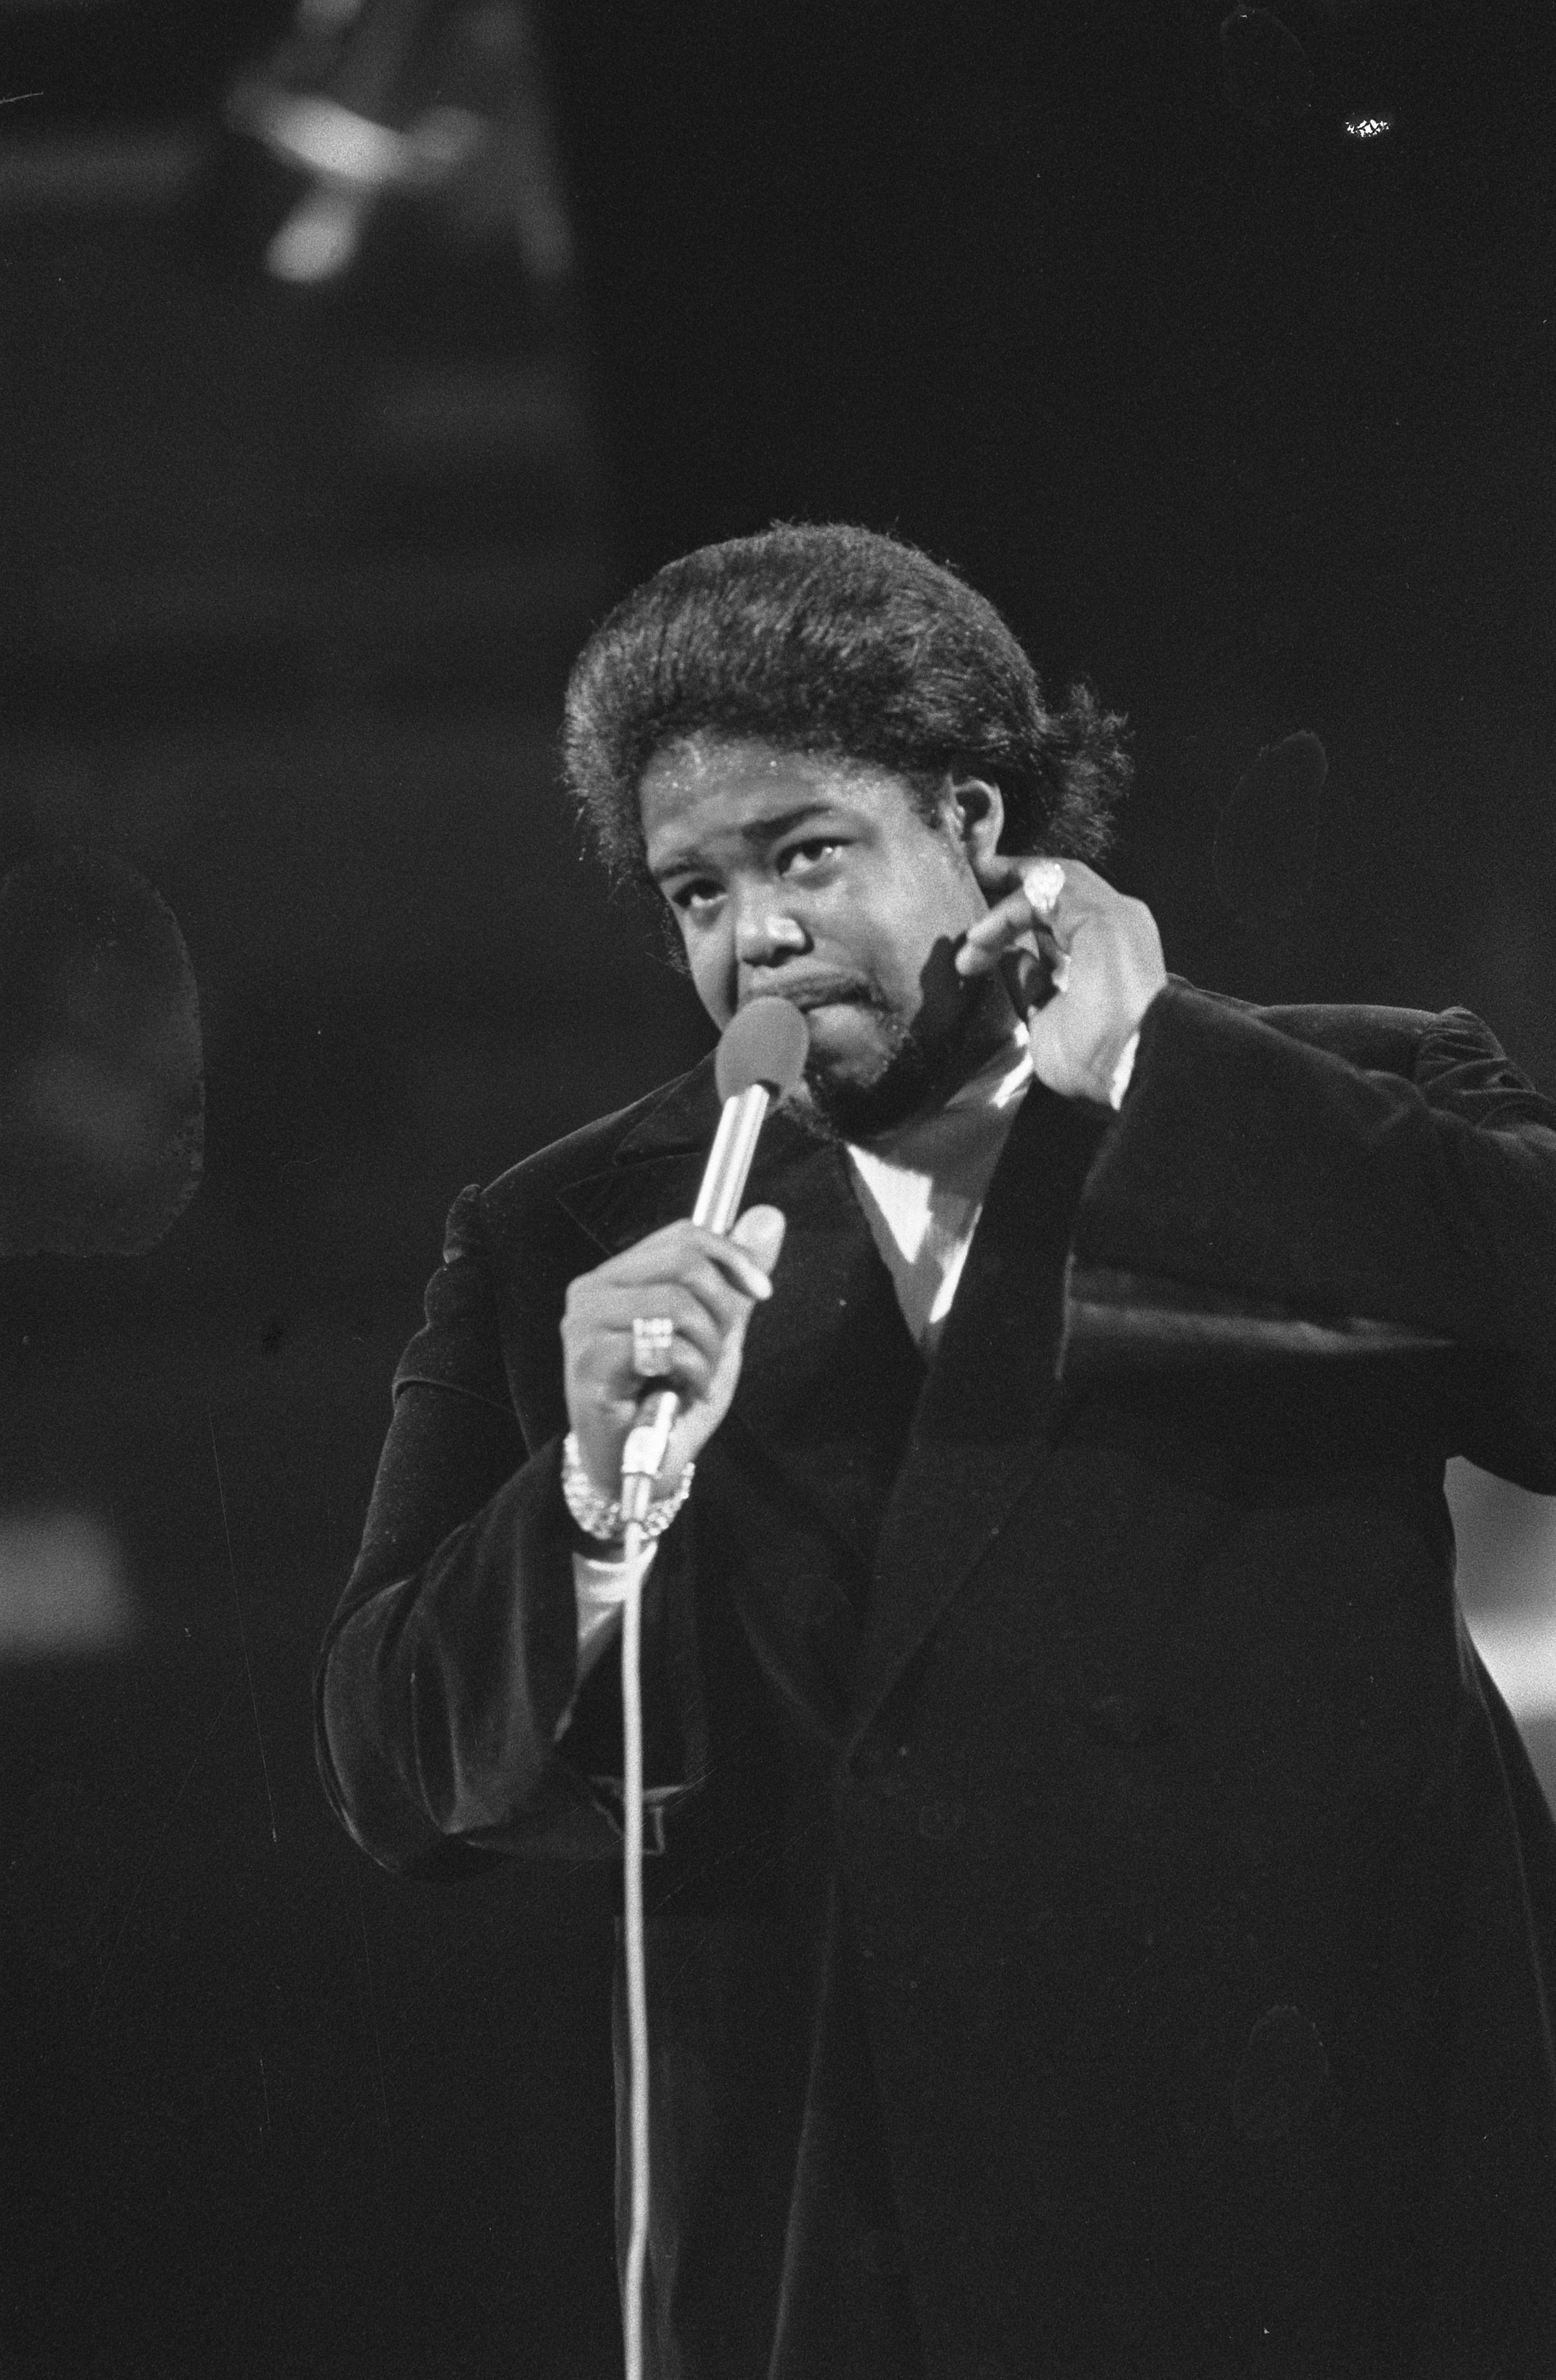 Barry White - Wikipedia